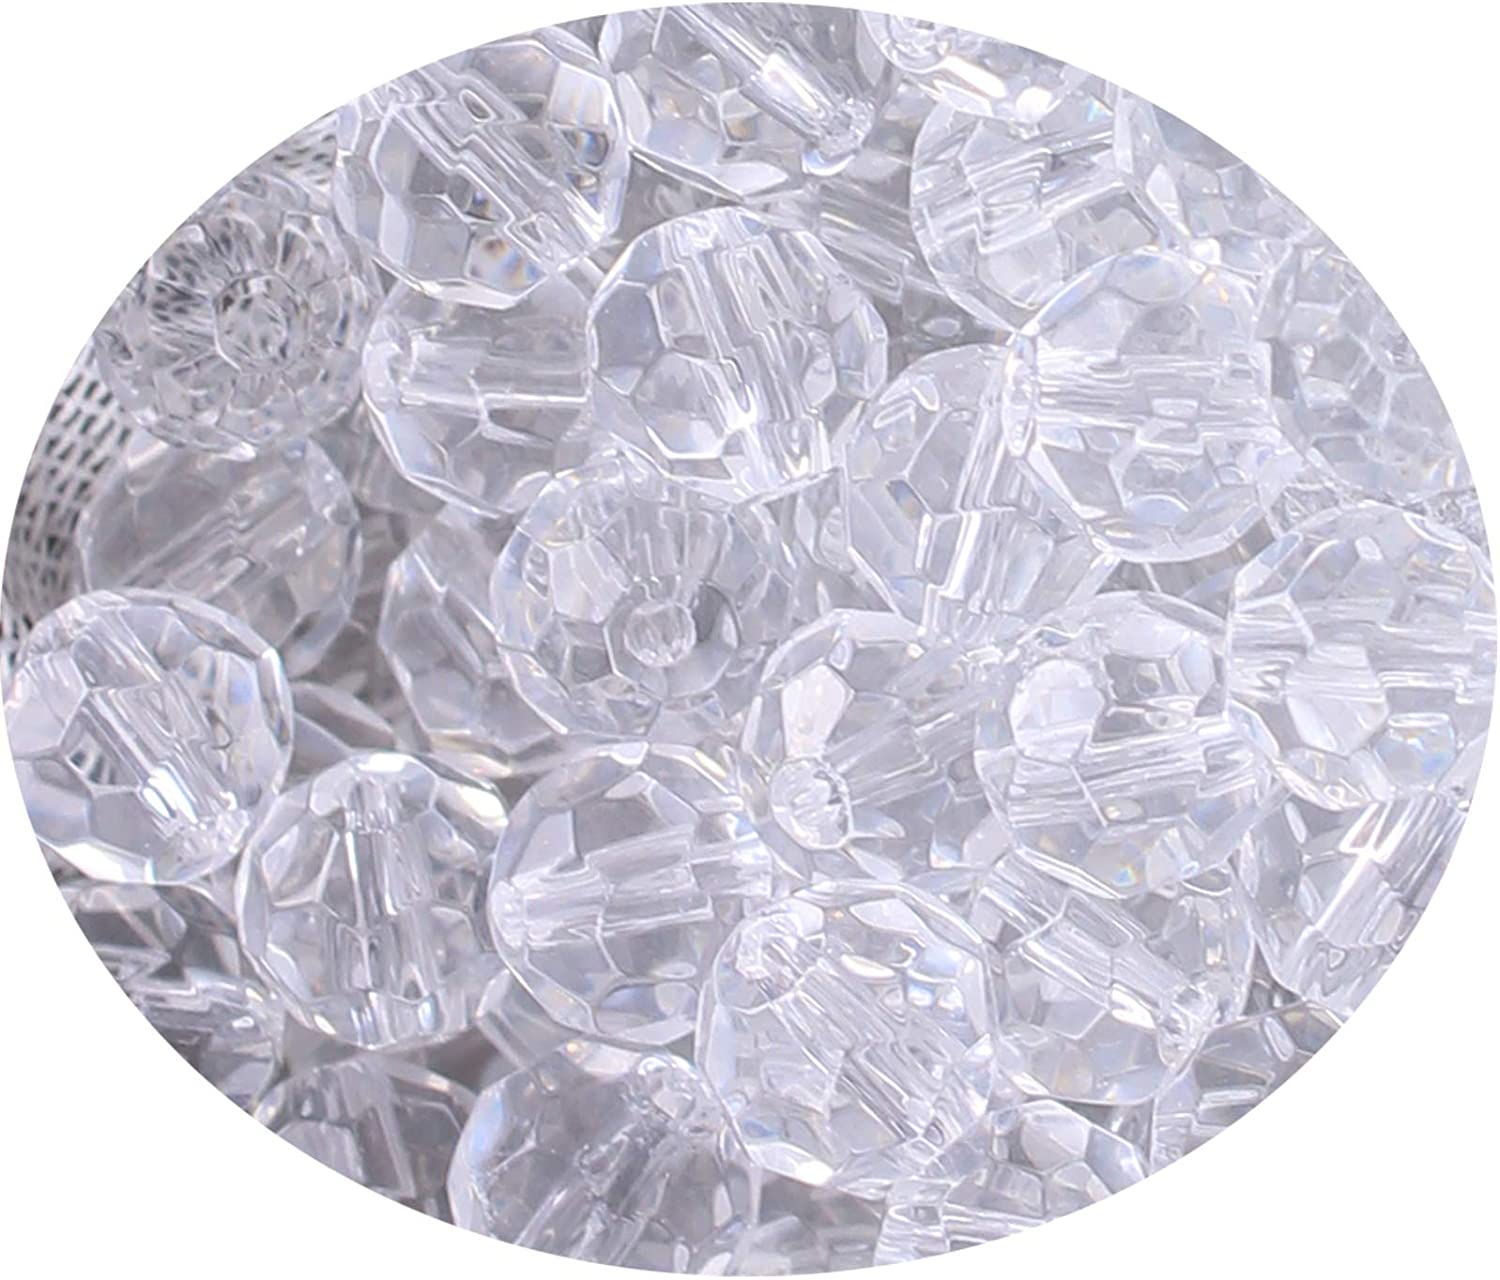 Faceted Clear Glass Crystal Rondelle Bead